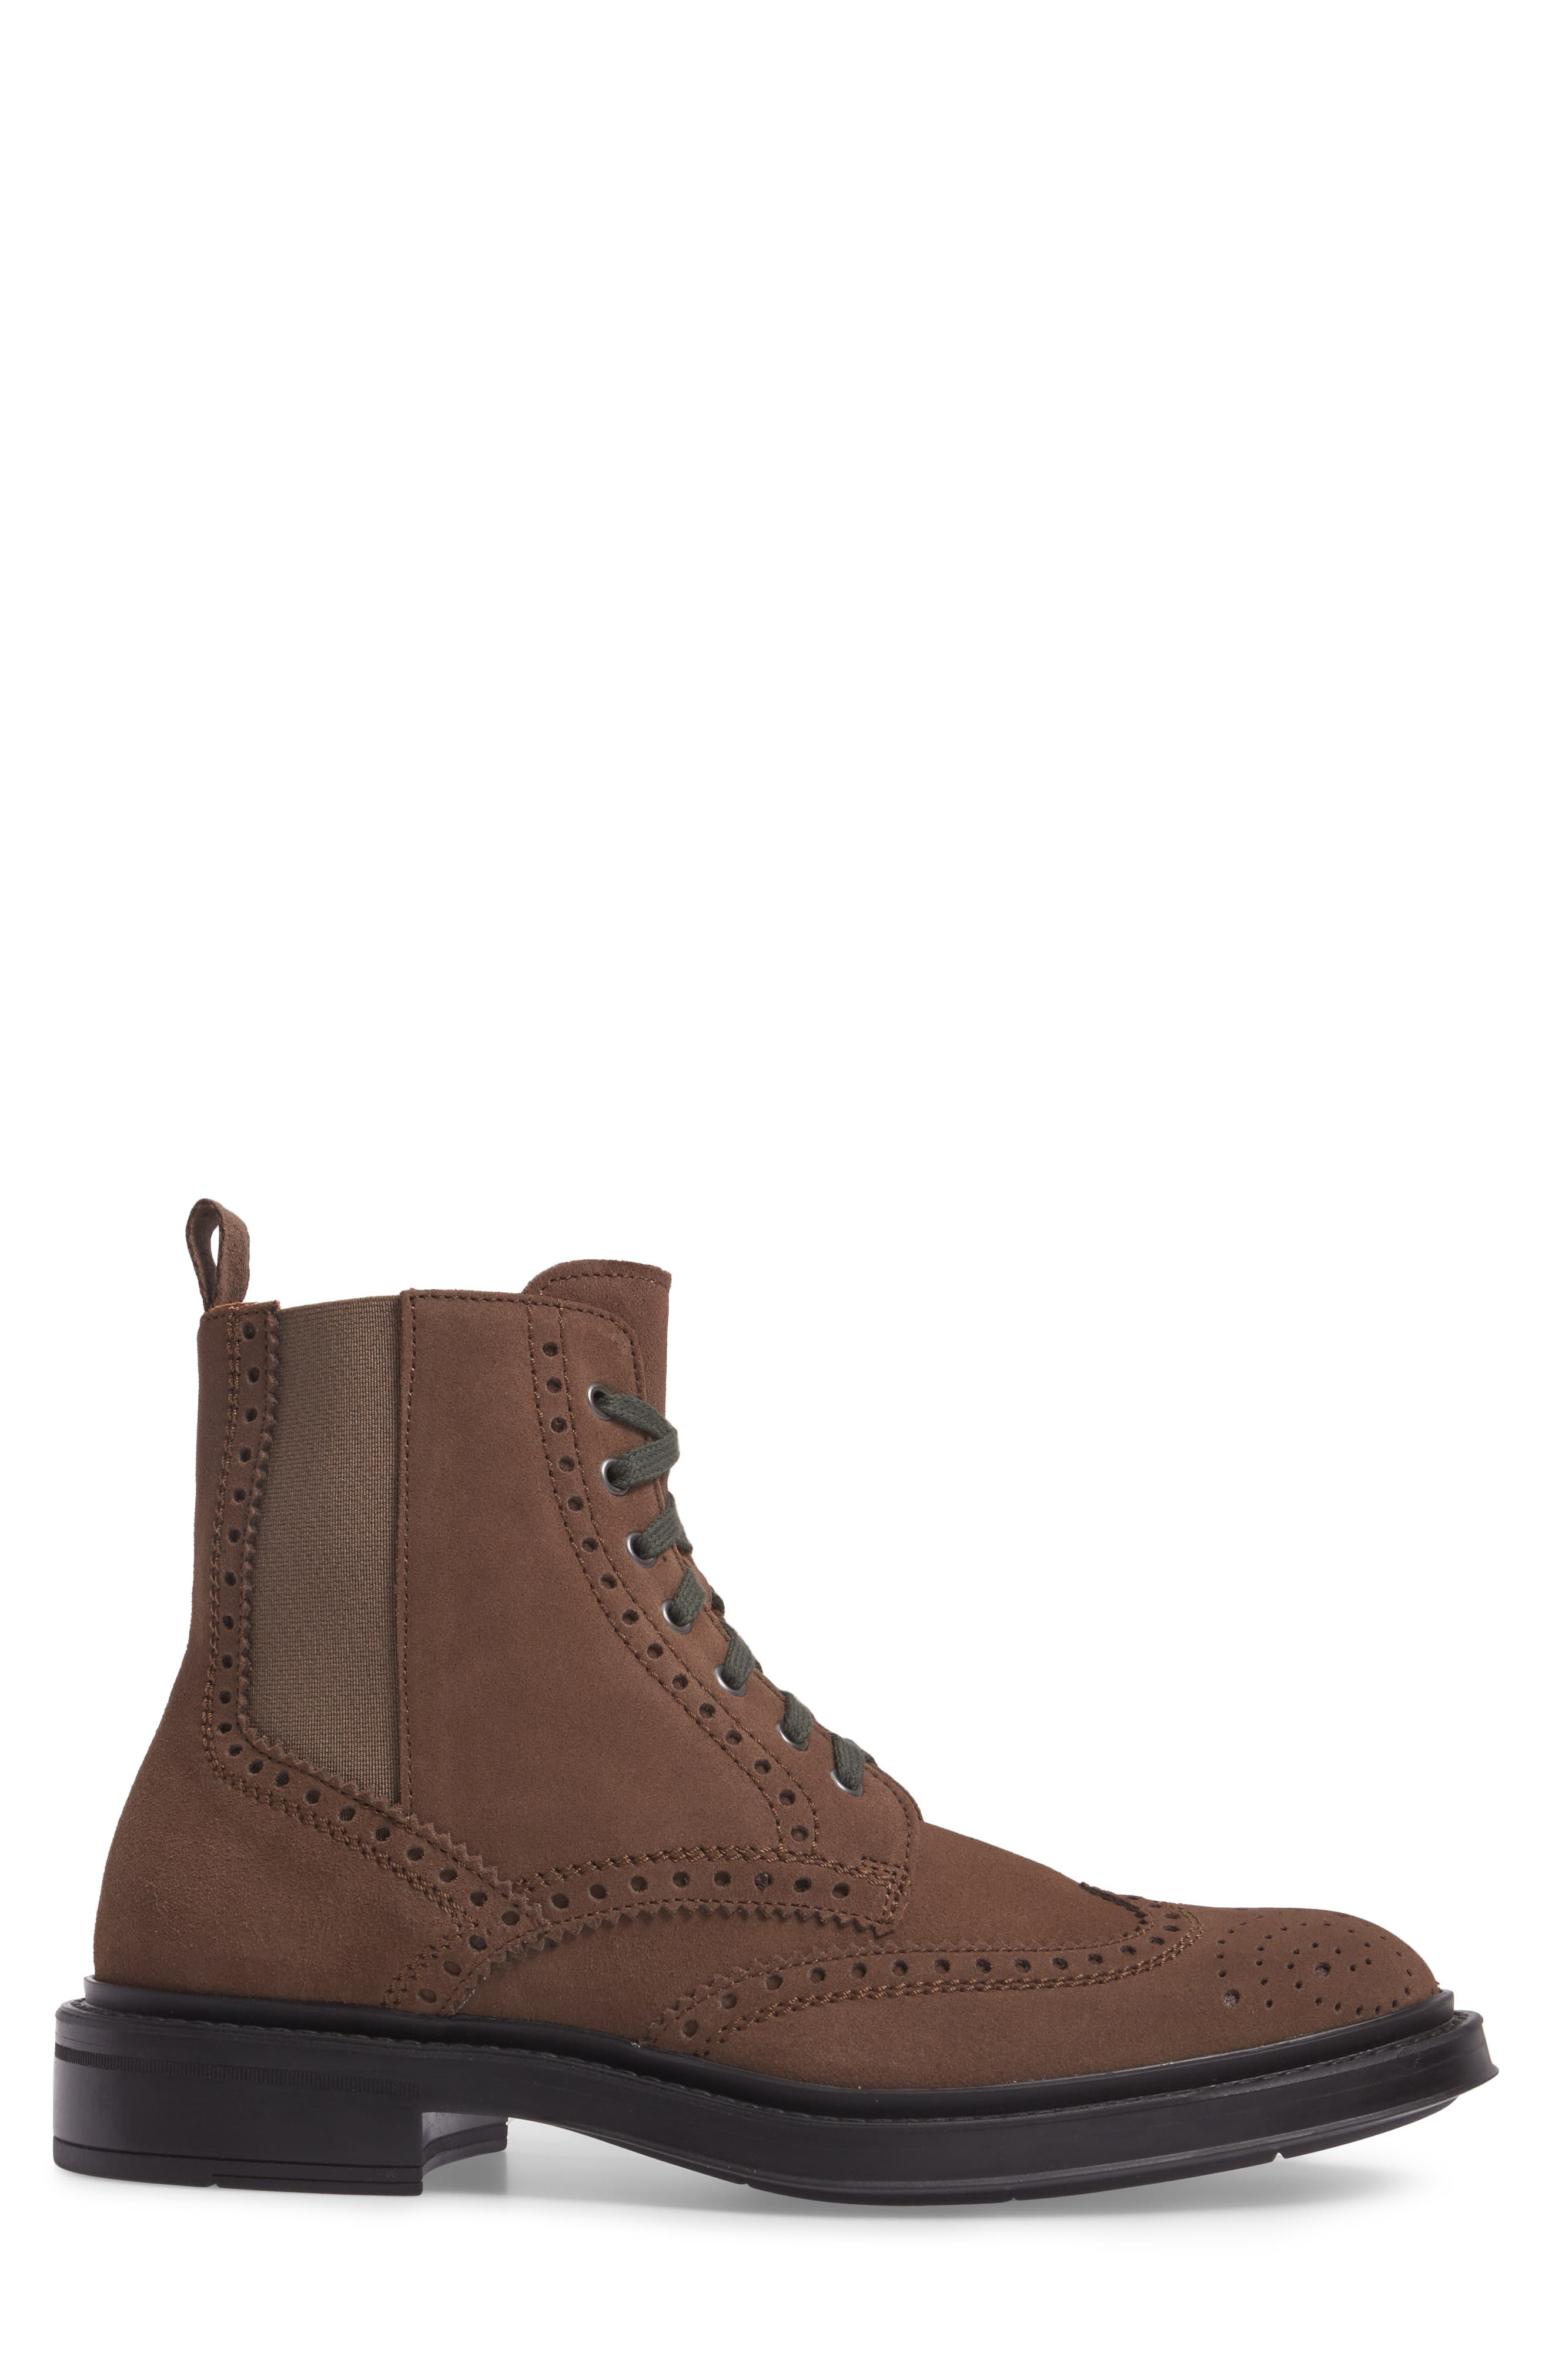 Lawrence Wingtip Boot,                             Alternate thumbnail 3, color,                             Dark Taupe